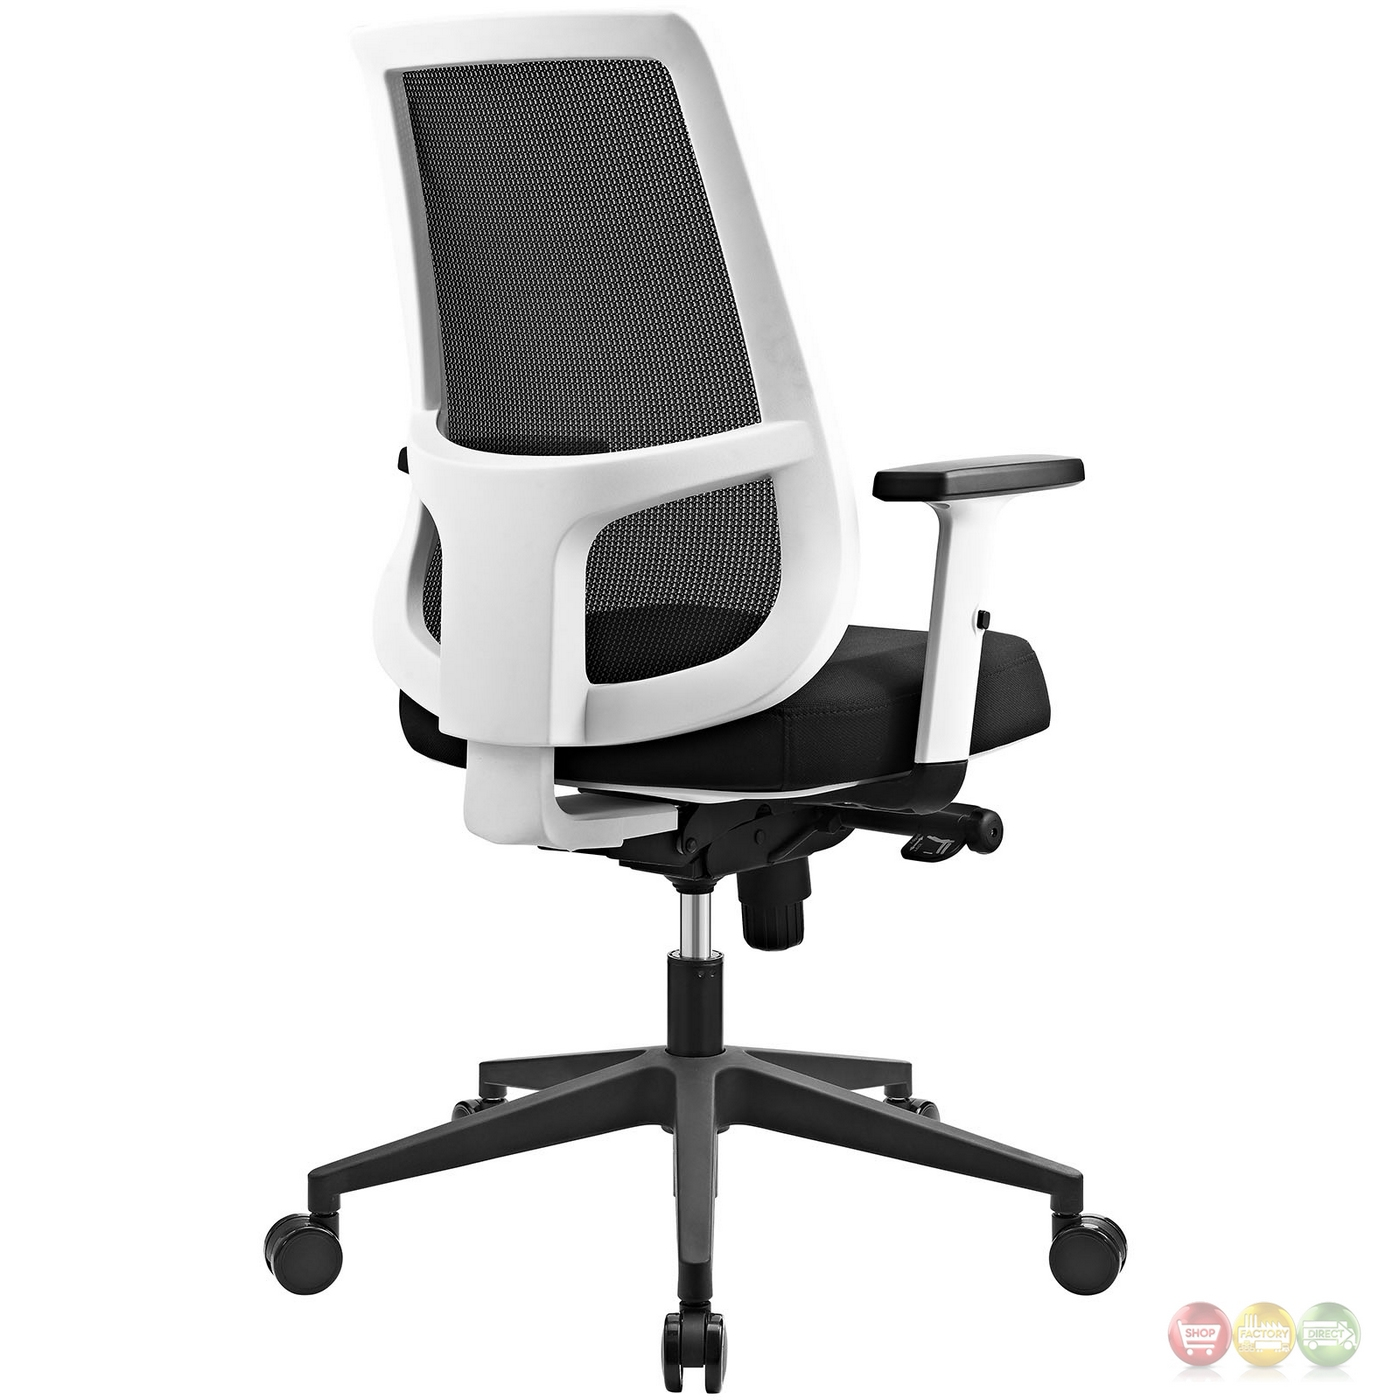 Back Support Office Chair Pump Ergonomic Mesh Back Office Chair W White Frame